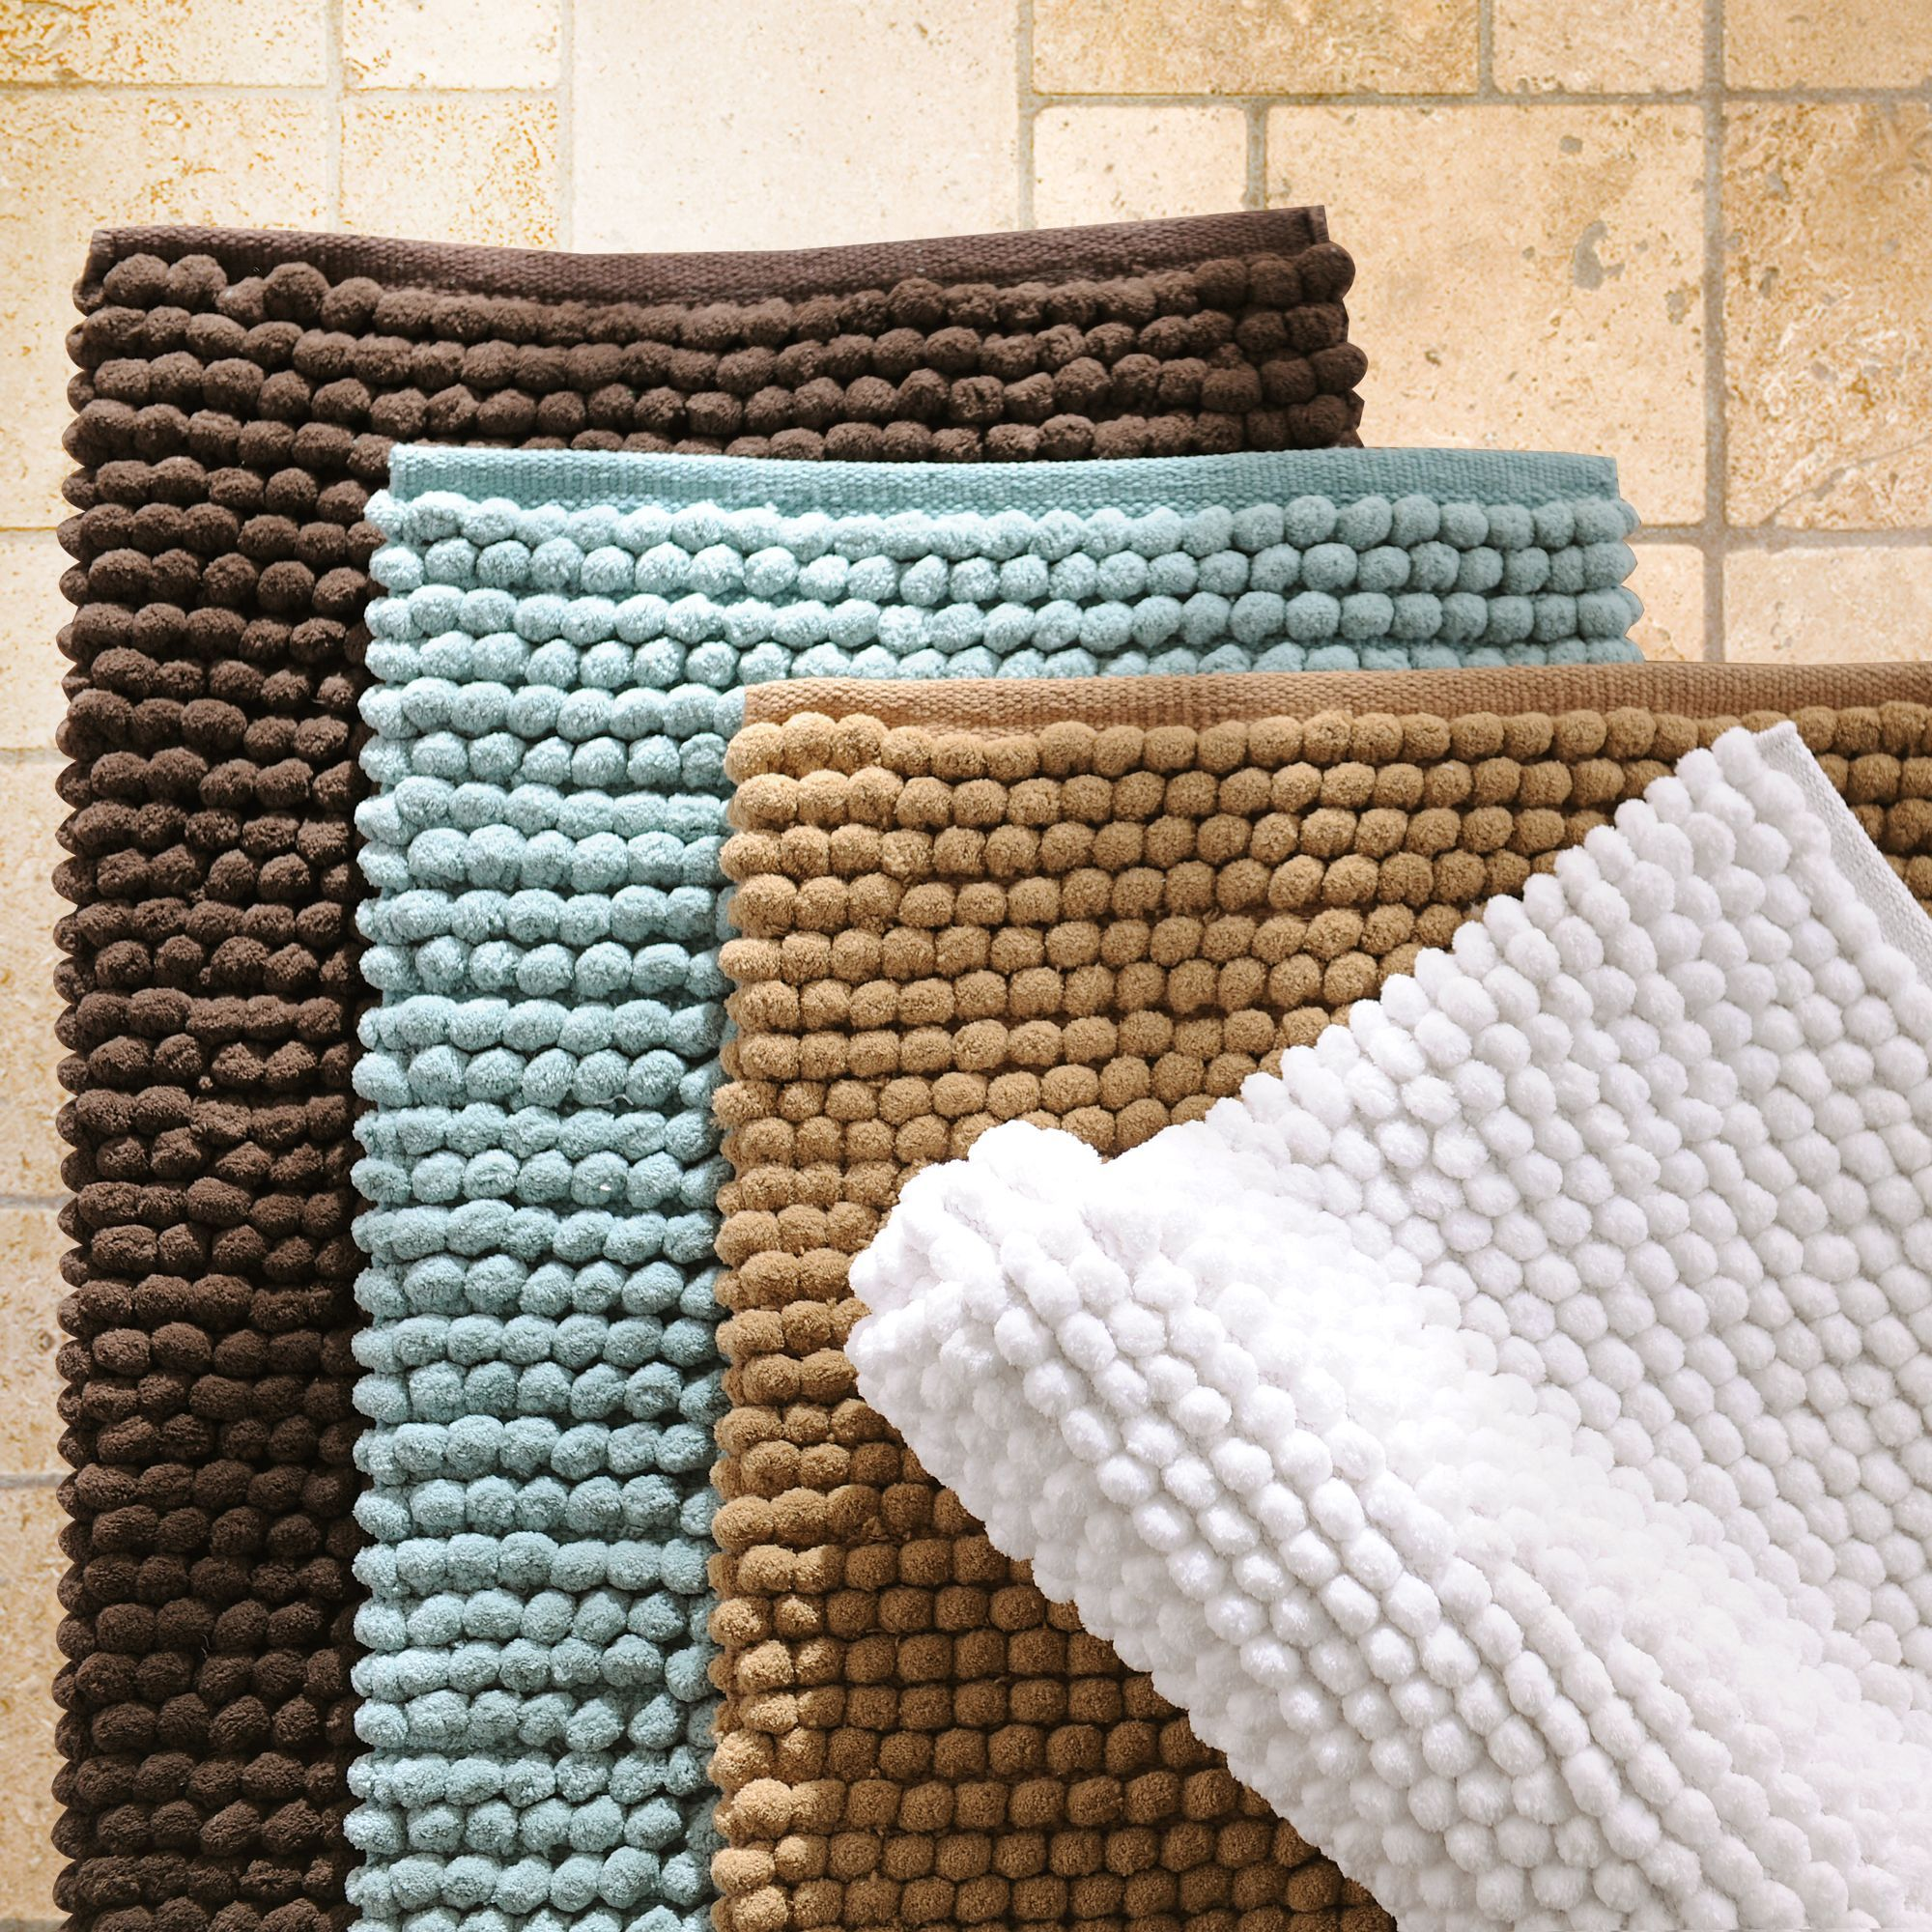 Kirkland S Soft Plush And Absorbent Our Bubble Bath Mats Are Exactly What You Need In Your Bathroom Availab Kir In 2020 Small Bathroom Rug Bath Rugs Bathroom Rugs [ 2000 x 2000 Pixel ]